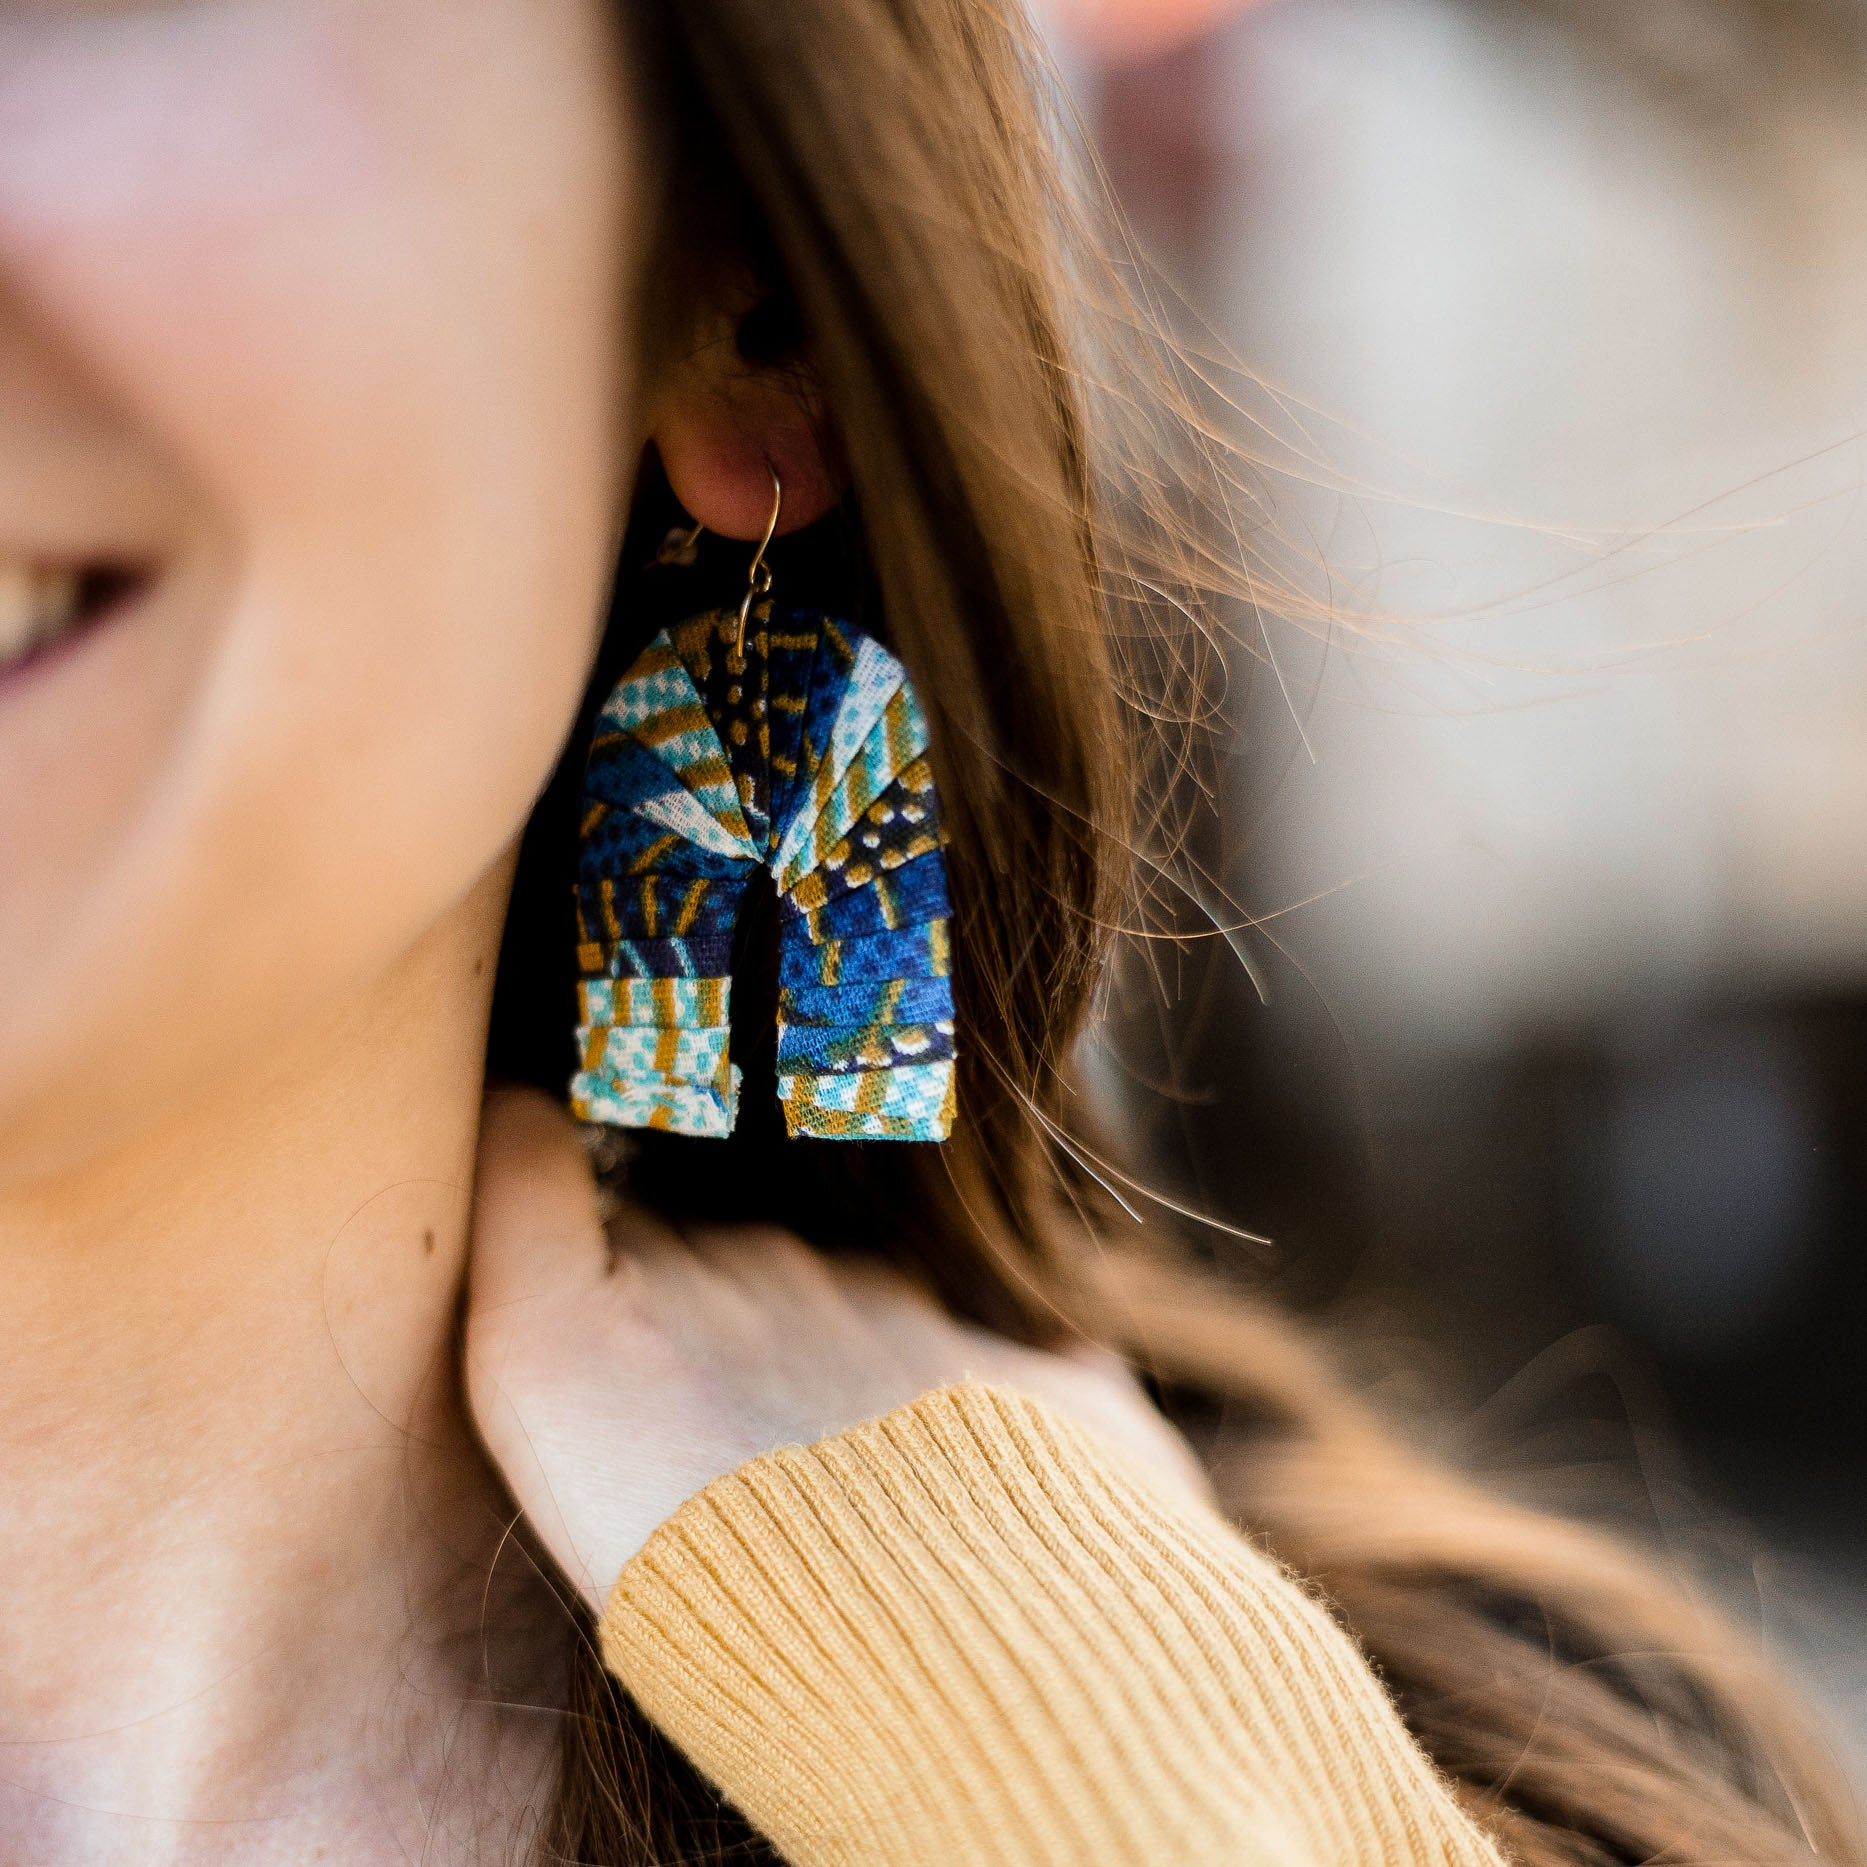 The Fabric Earrings: blue fabric wrapped over recycled materials made by artisans in the Horn of Africa. Sustainable, Artisan-Made And Ethically Sourced